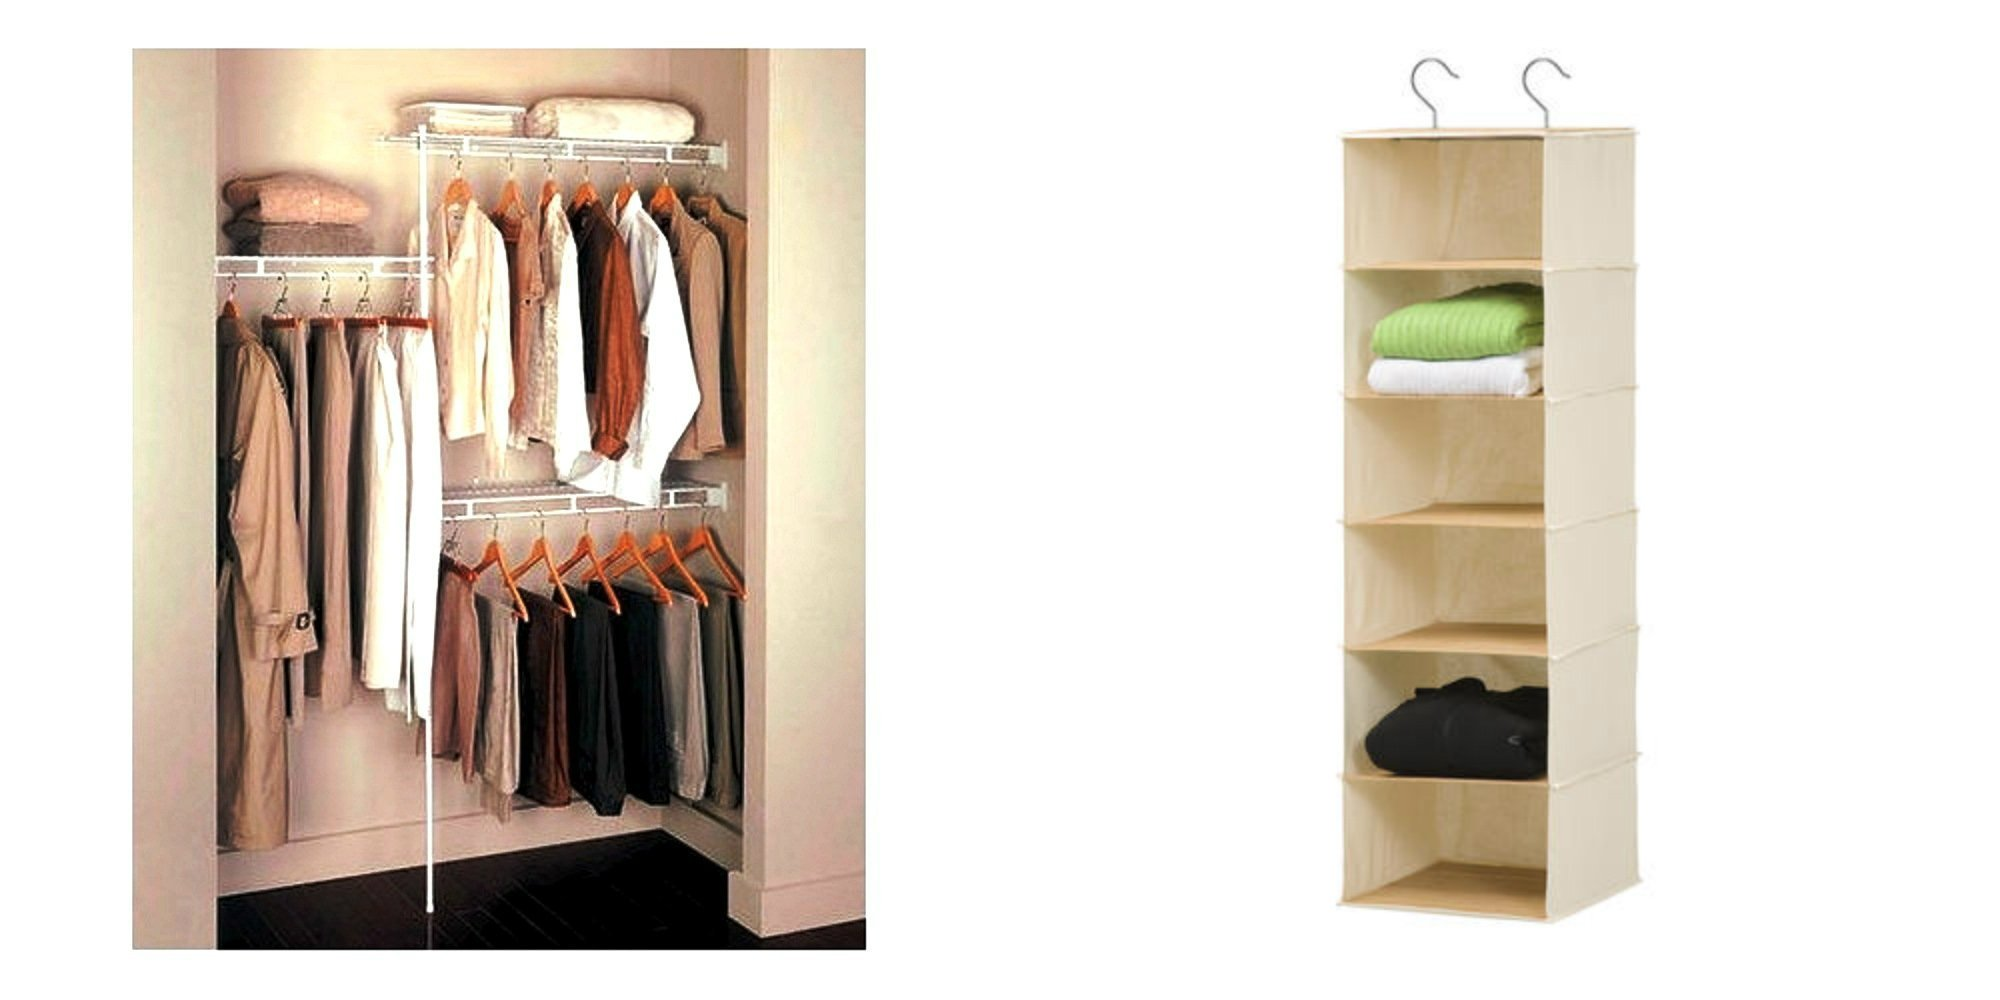 Rubbermaid Closet Organizer 3' - 5' - White + Honey-Can-Do 6 Hanging Shelfs in Natural Bamboo and Canvas